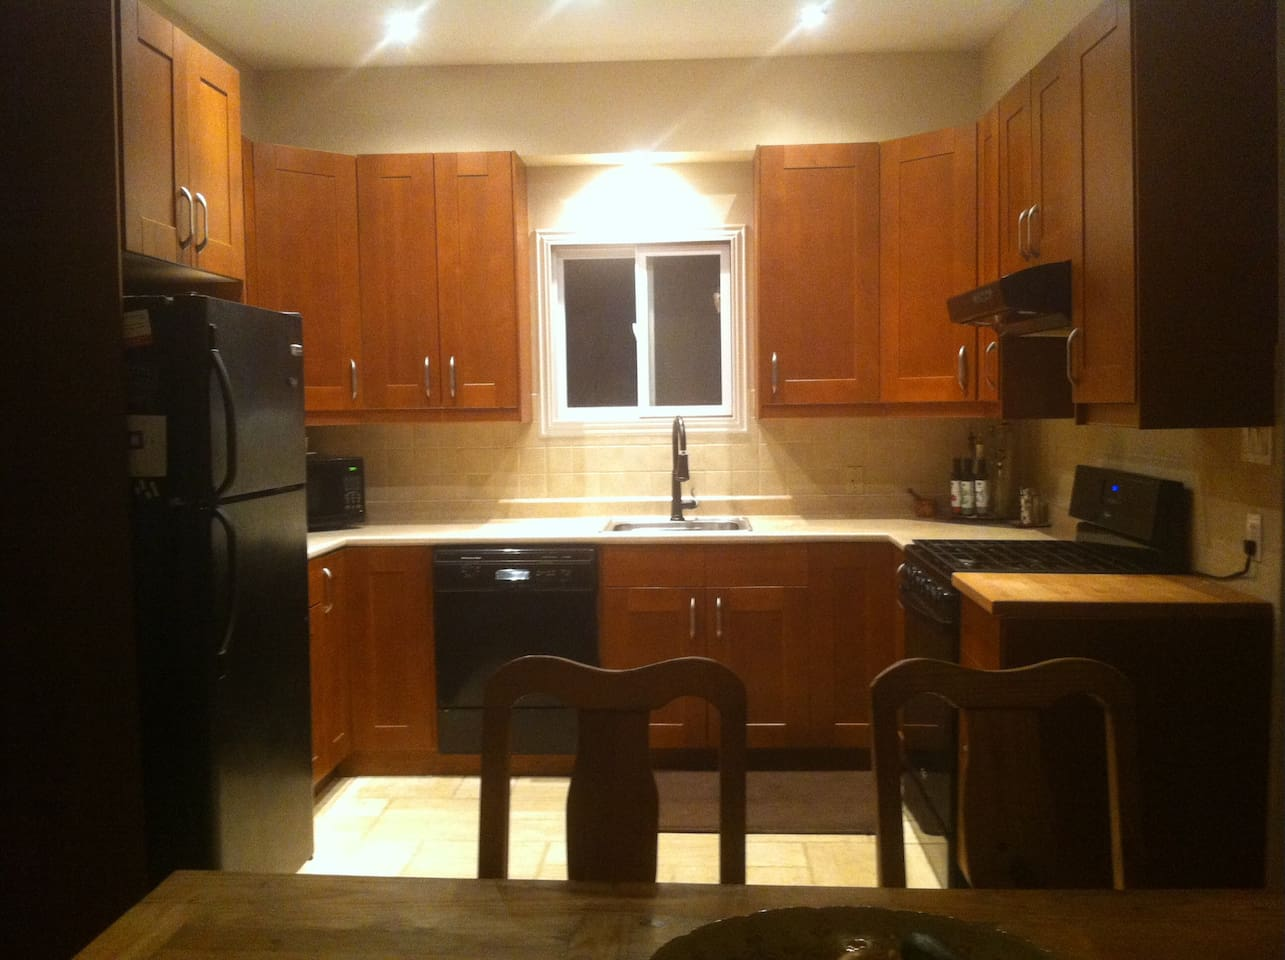 Large kitchen fully outfitted with all appliances, including food processor, microwave, and dishwasher